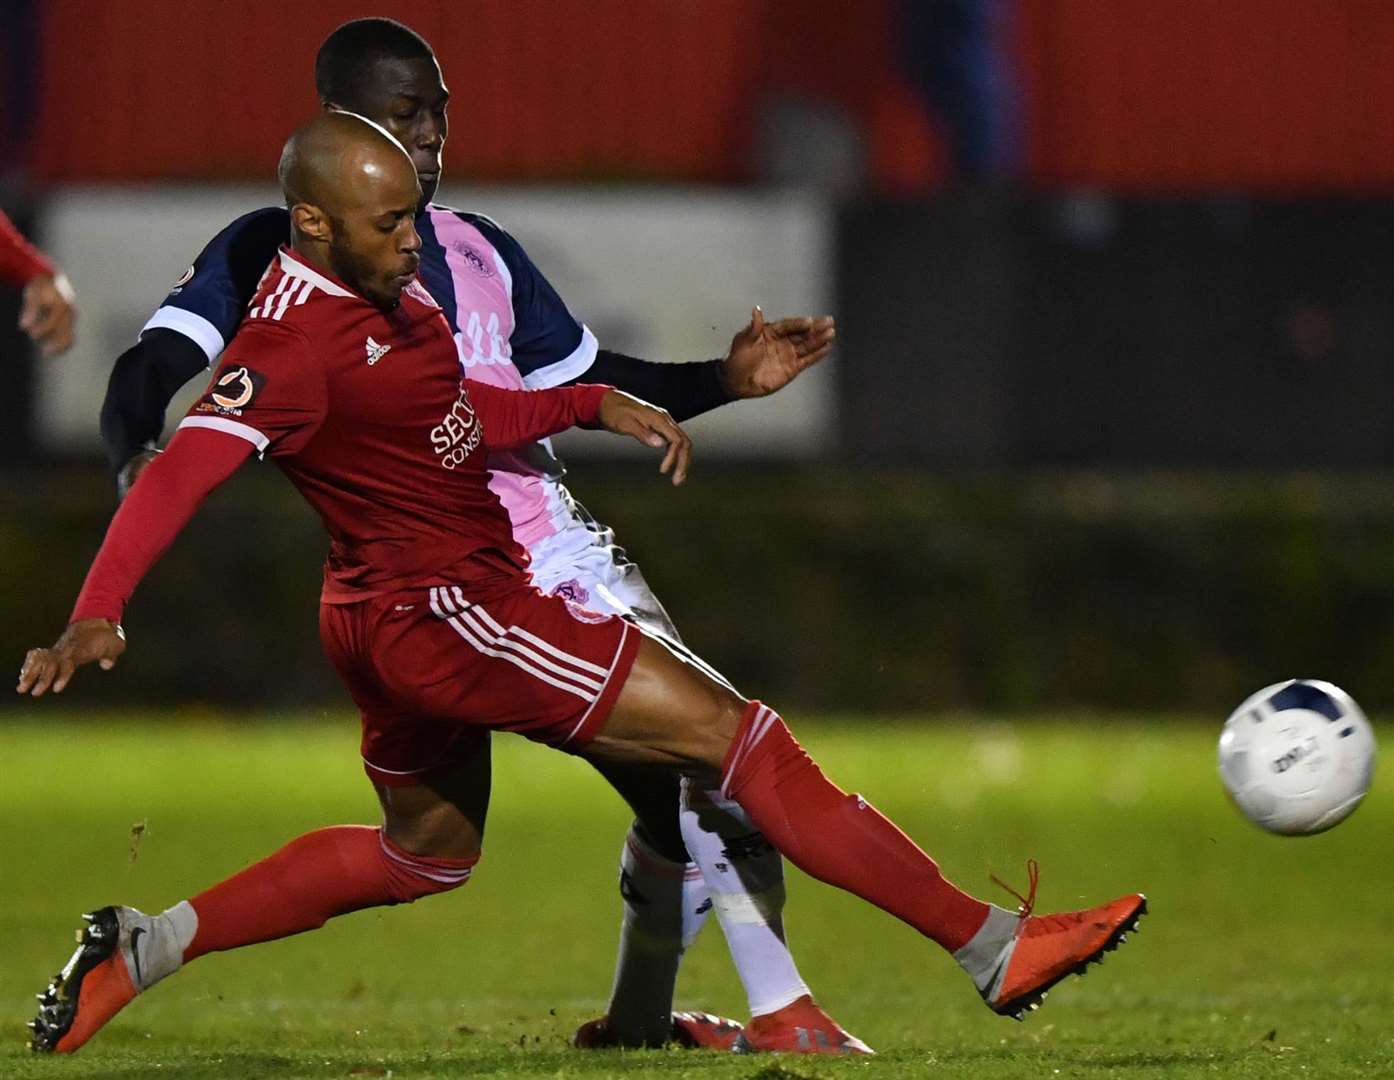 Welling's Sanchez Ming gets to the ball first against Dulwich. Picture: Keith Gillard